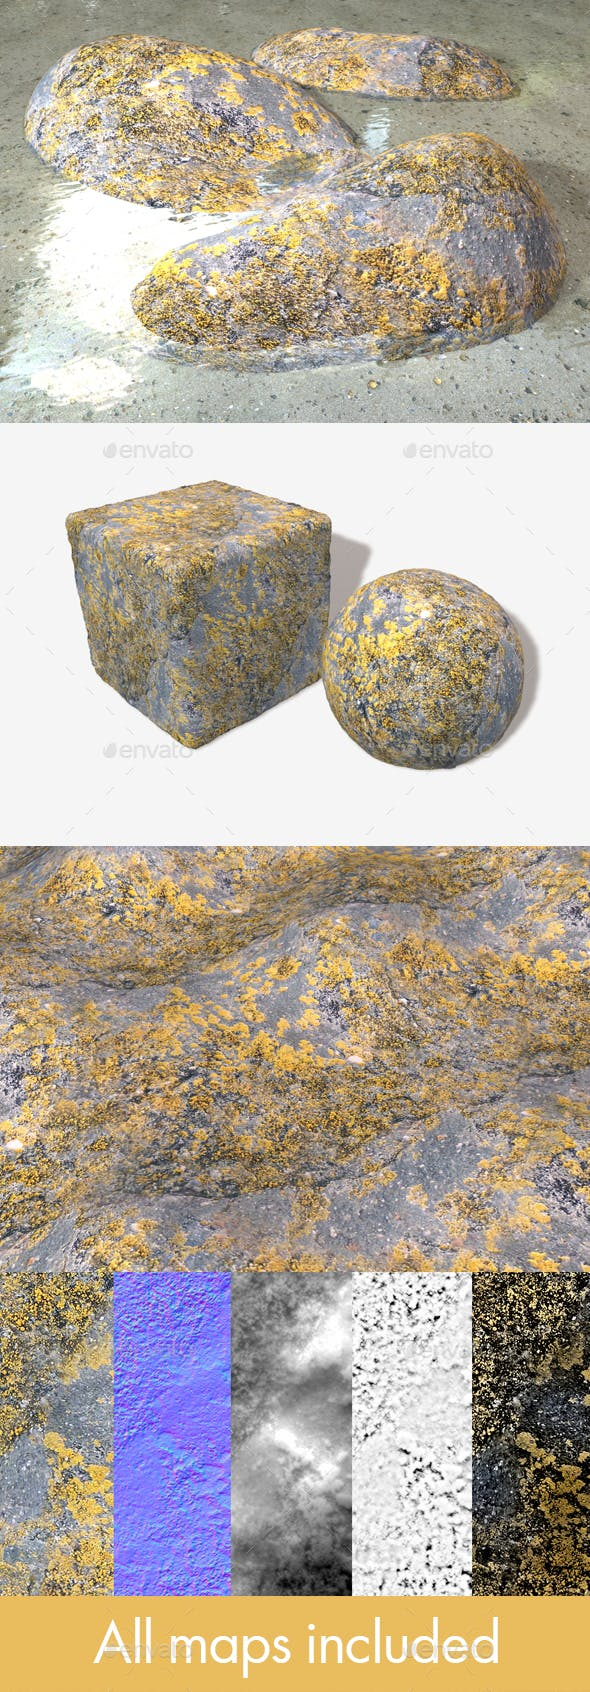 Mossy Rock Seamless Texture - 3DOcean Item for Sale